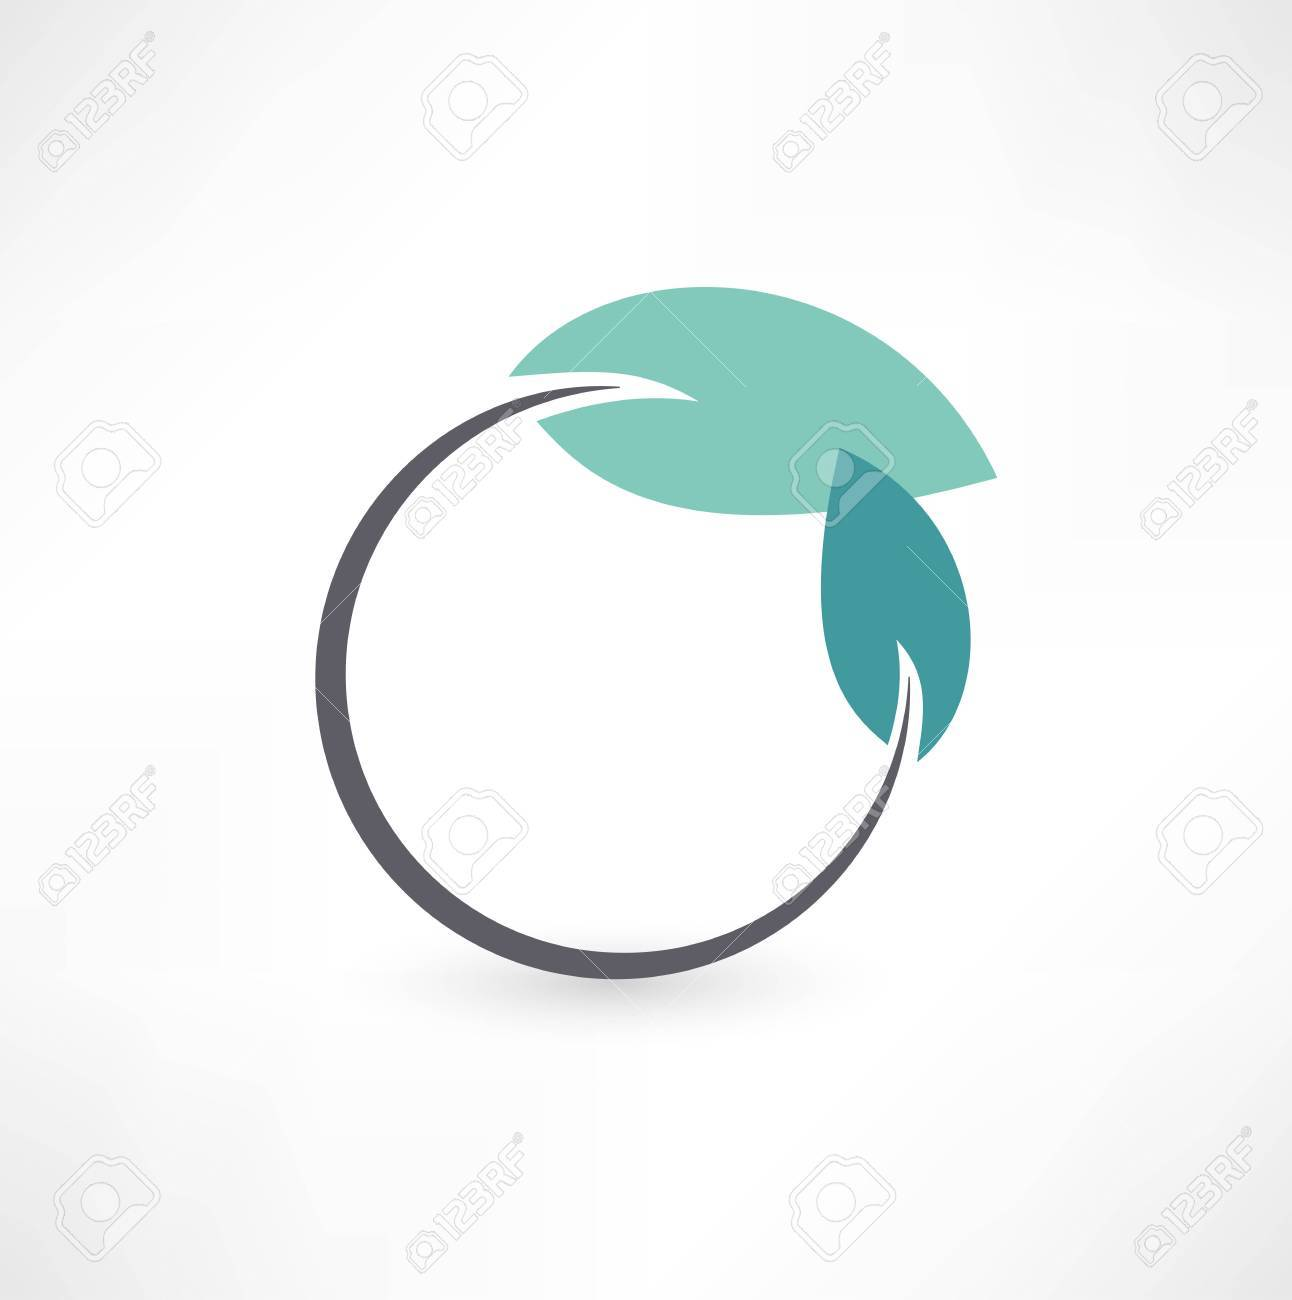 Eco symbols with leaf Stock Vector - 15879563